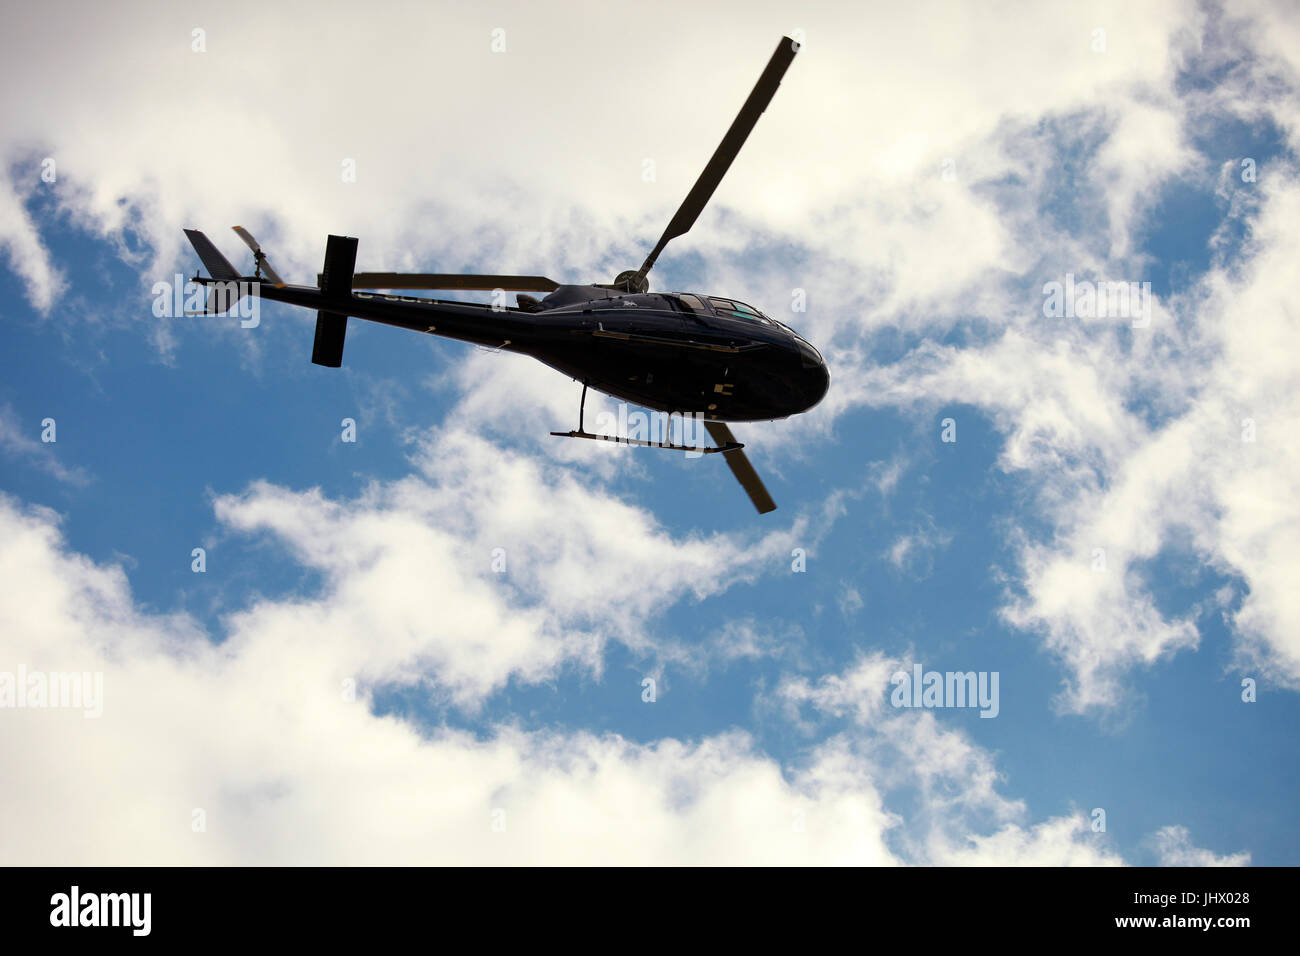 military helicopter, air transport - Stock Image